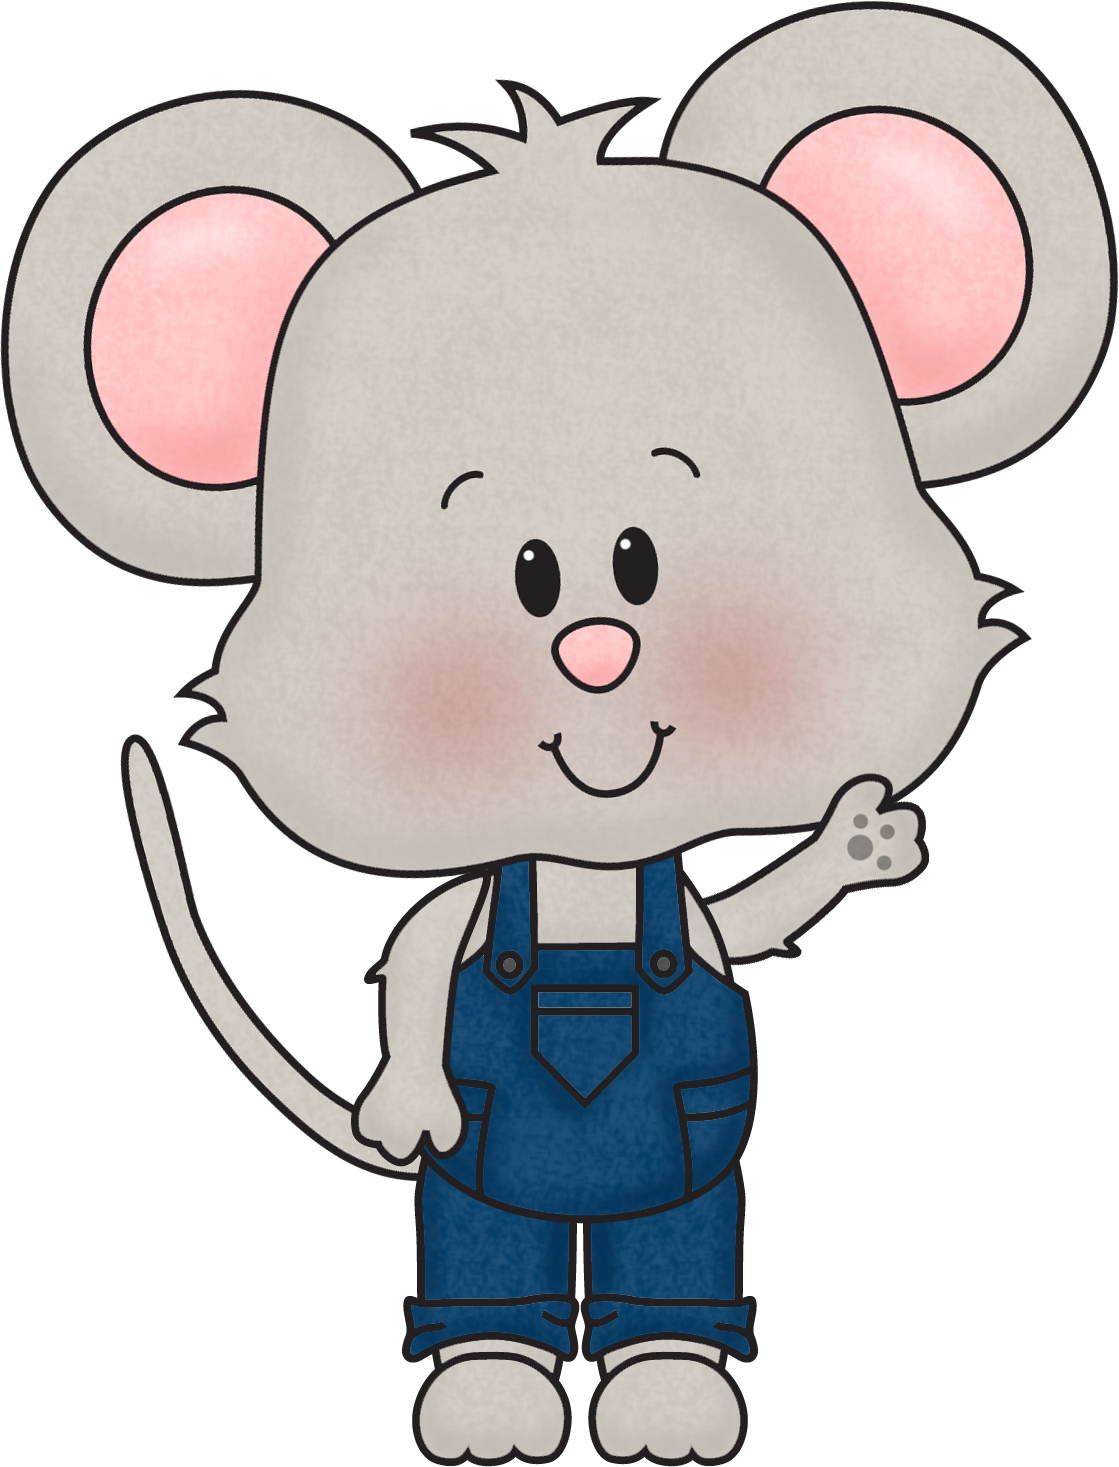 Cute mice clipart jpg freeuse Free Cute Mouse Cliparts, Download Free Clip Art, Free Clip ... jpg freeuse